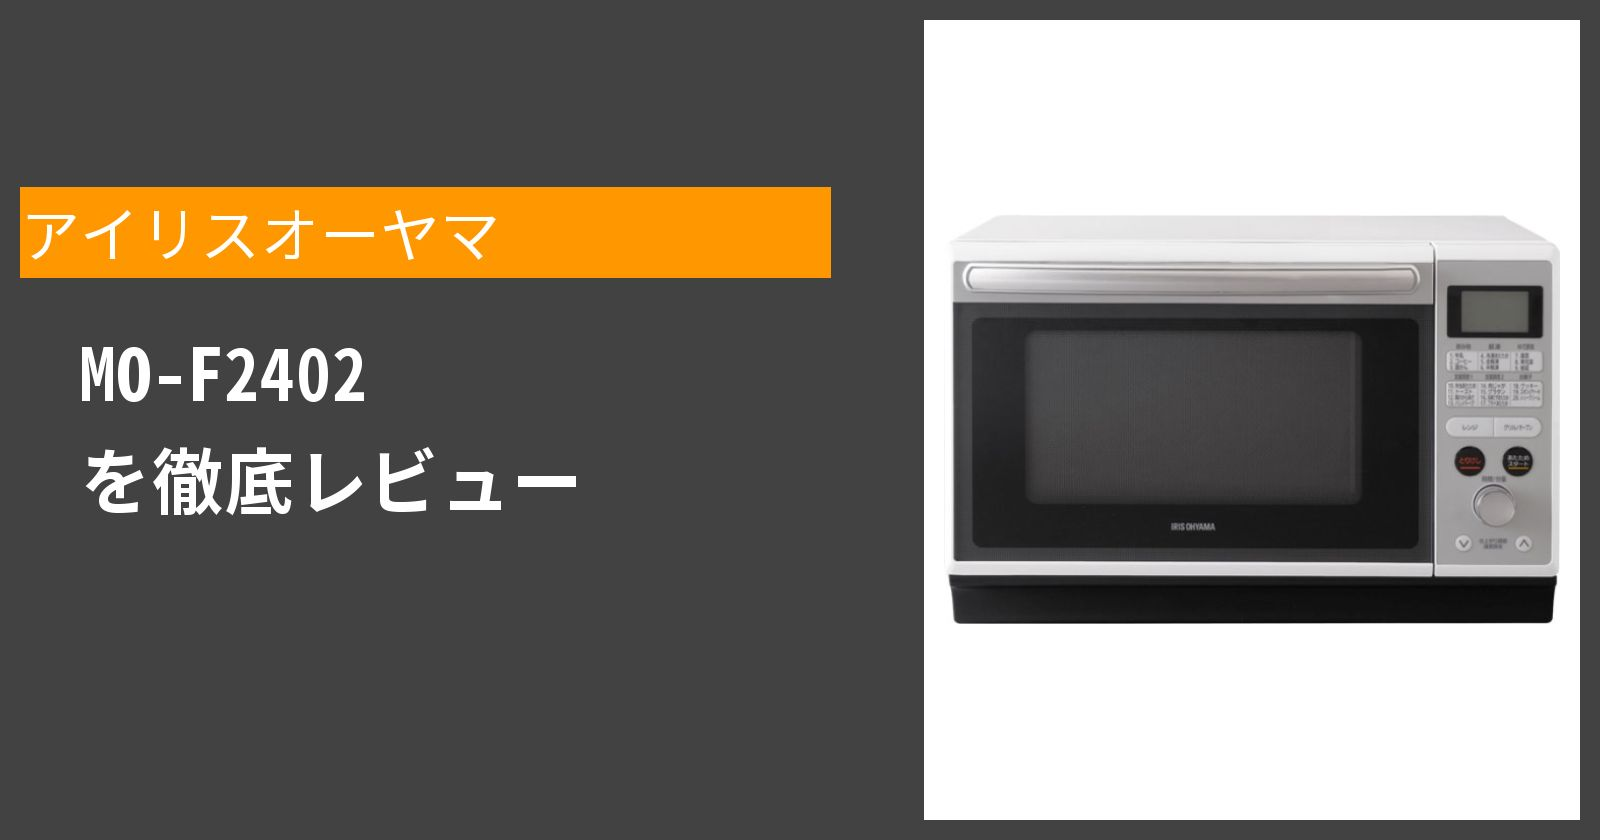 MO-F2402を徹底評価